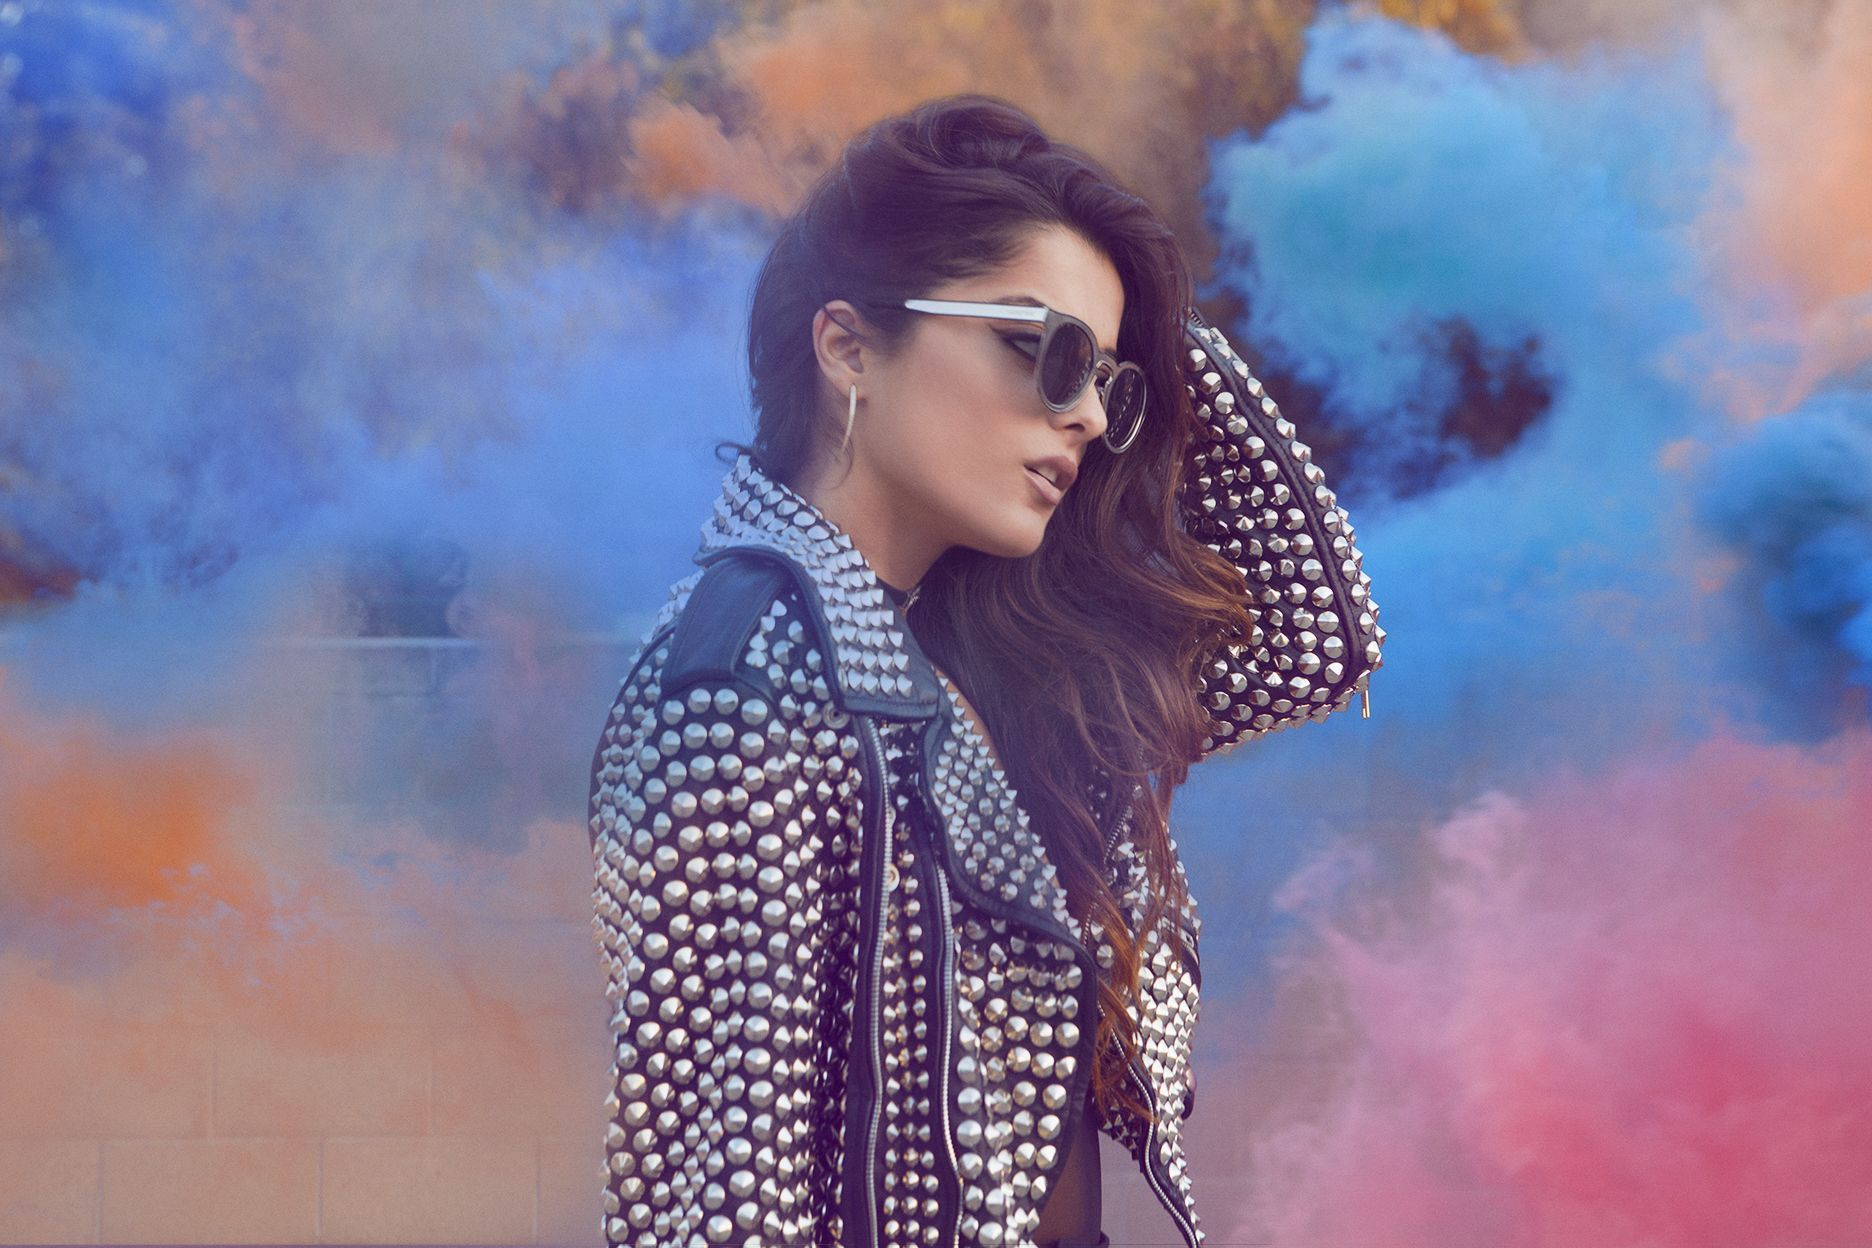 Bebe Rexha Wallpapers Hd Collection For Free Download Bebe